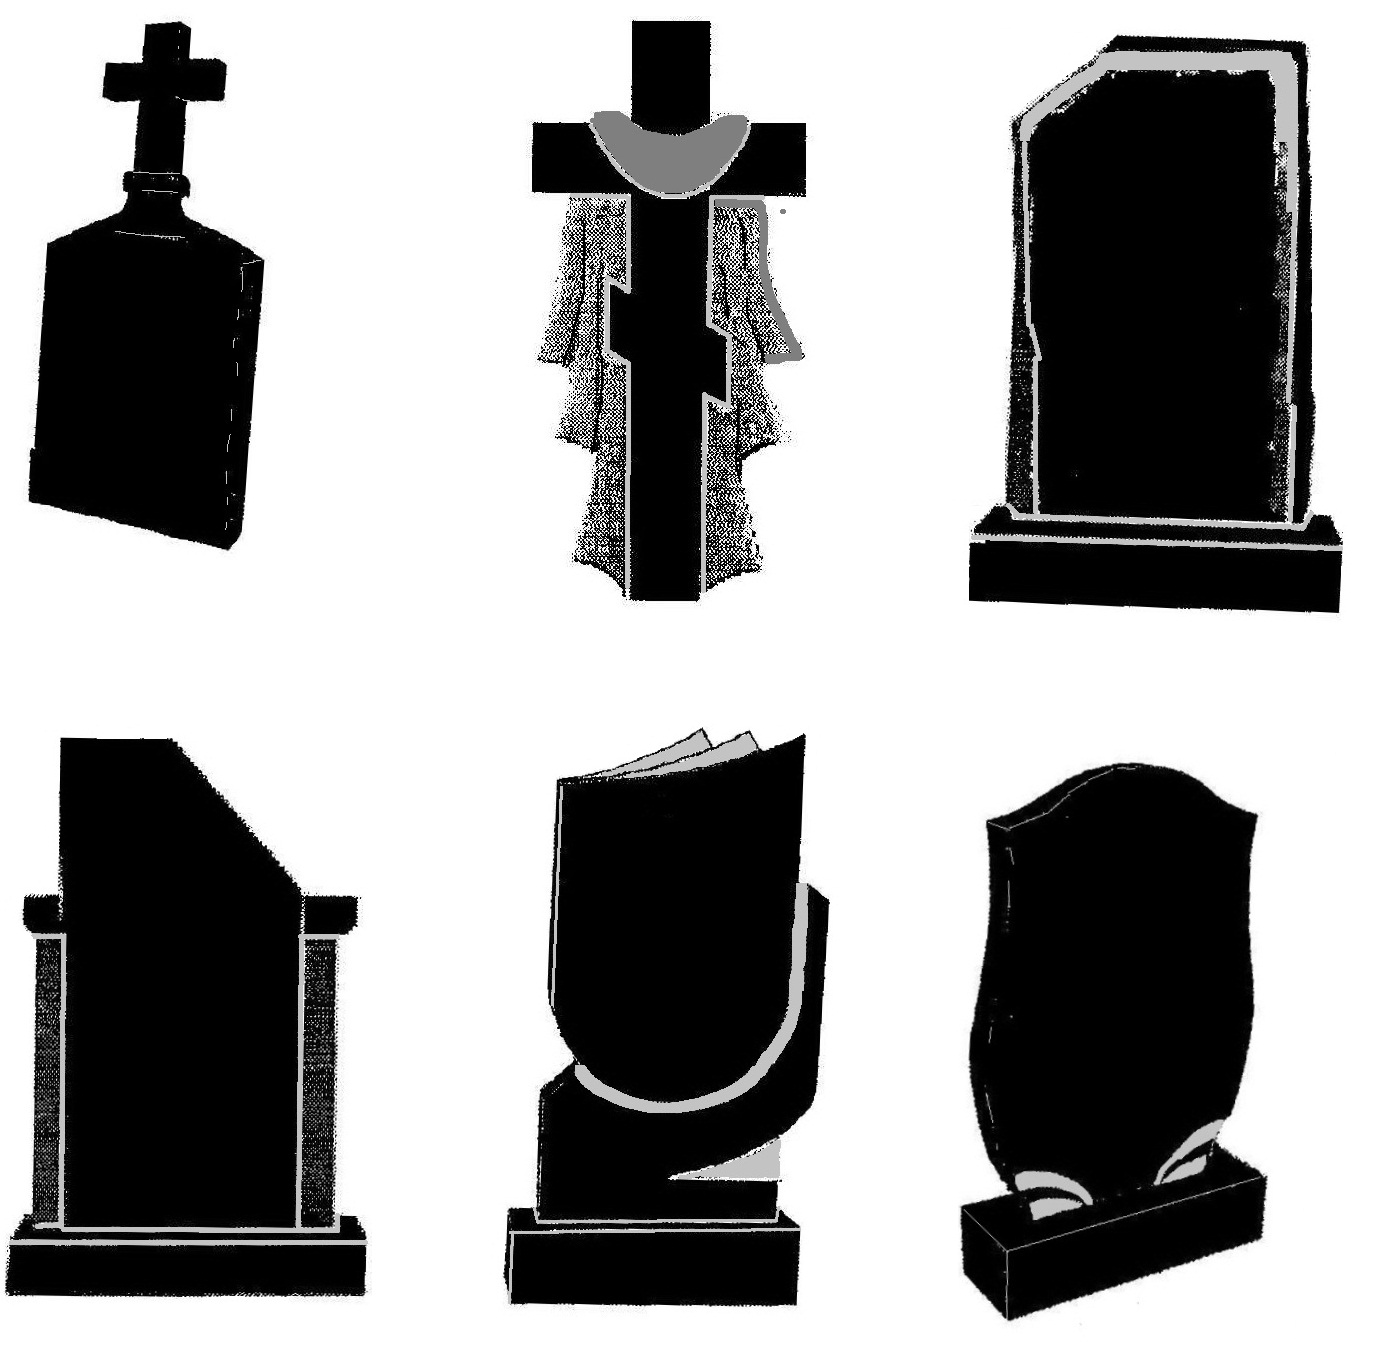 nadgrobija-kresty-tombstones- crosses